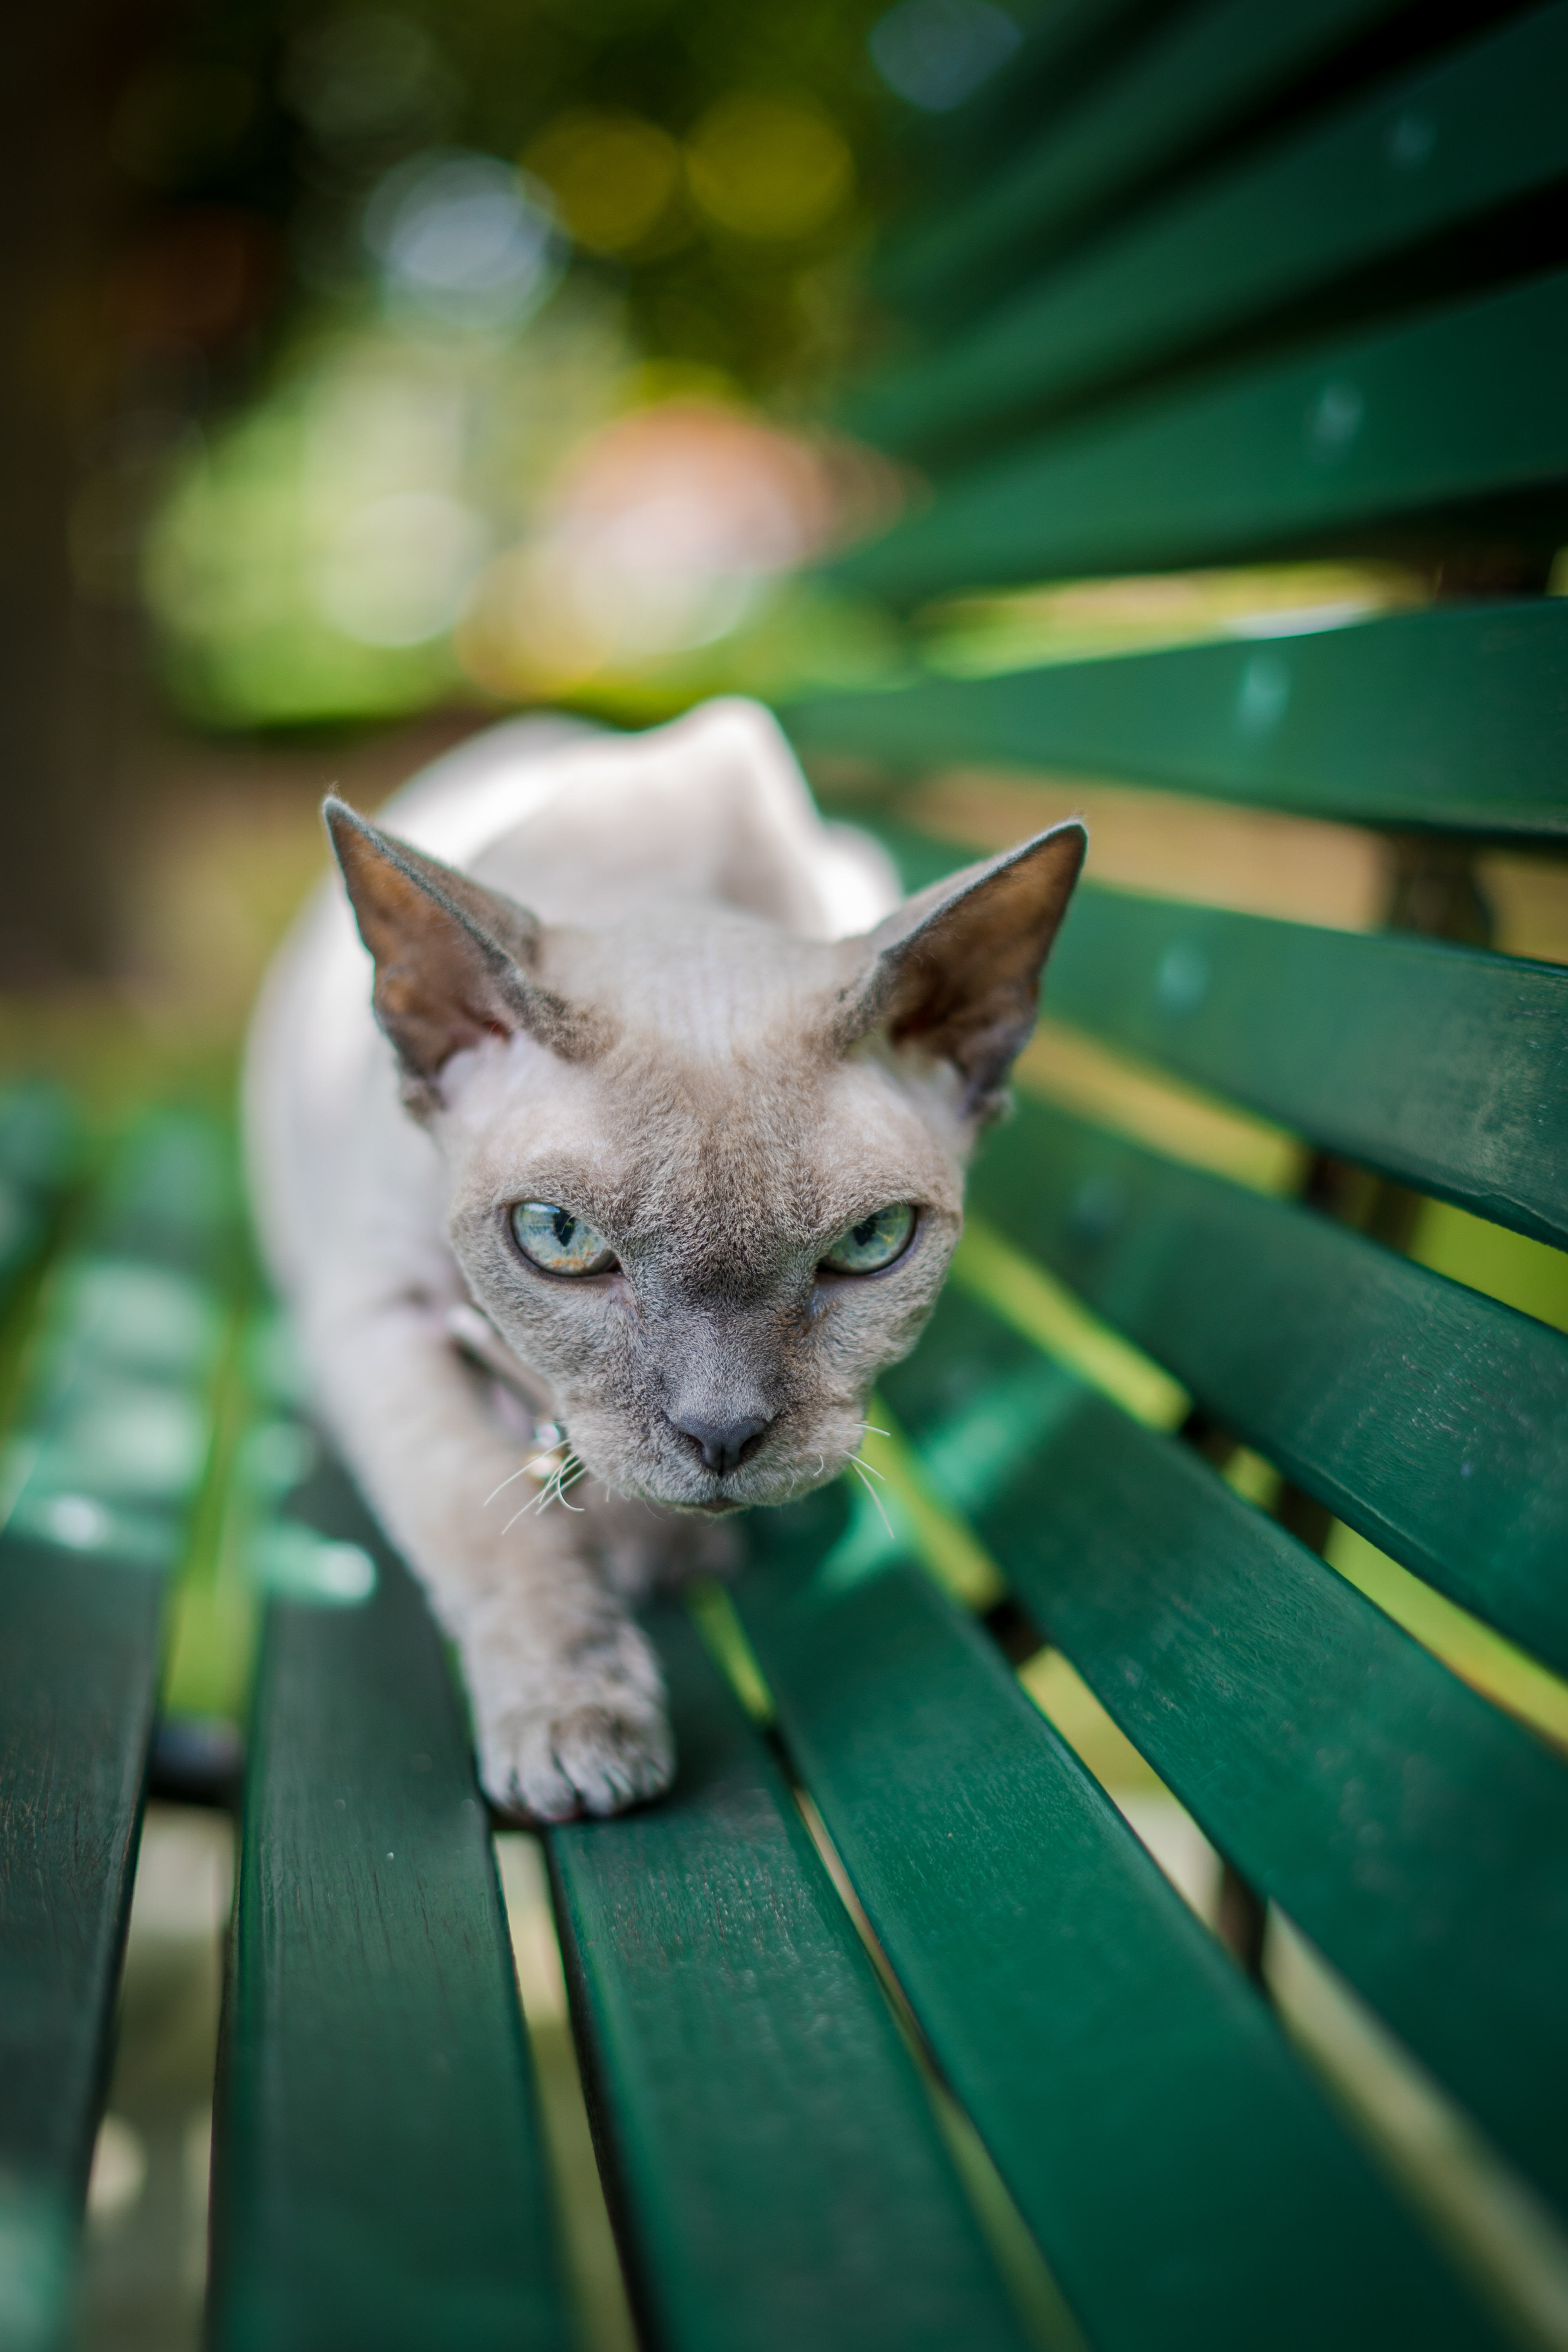 114824 download wallpaper Animals, Sphinx, Cat, Pet, Grey, Sight, Opinion screensavers and pictures for free